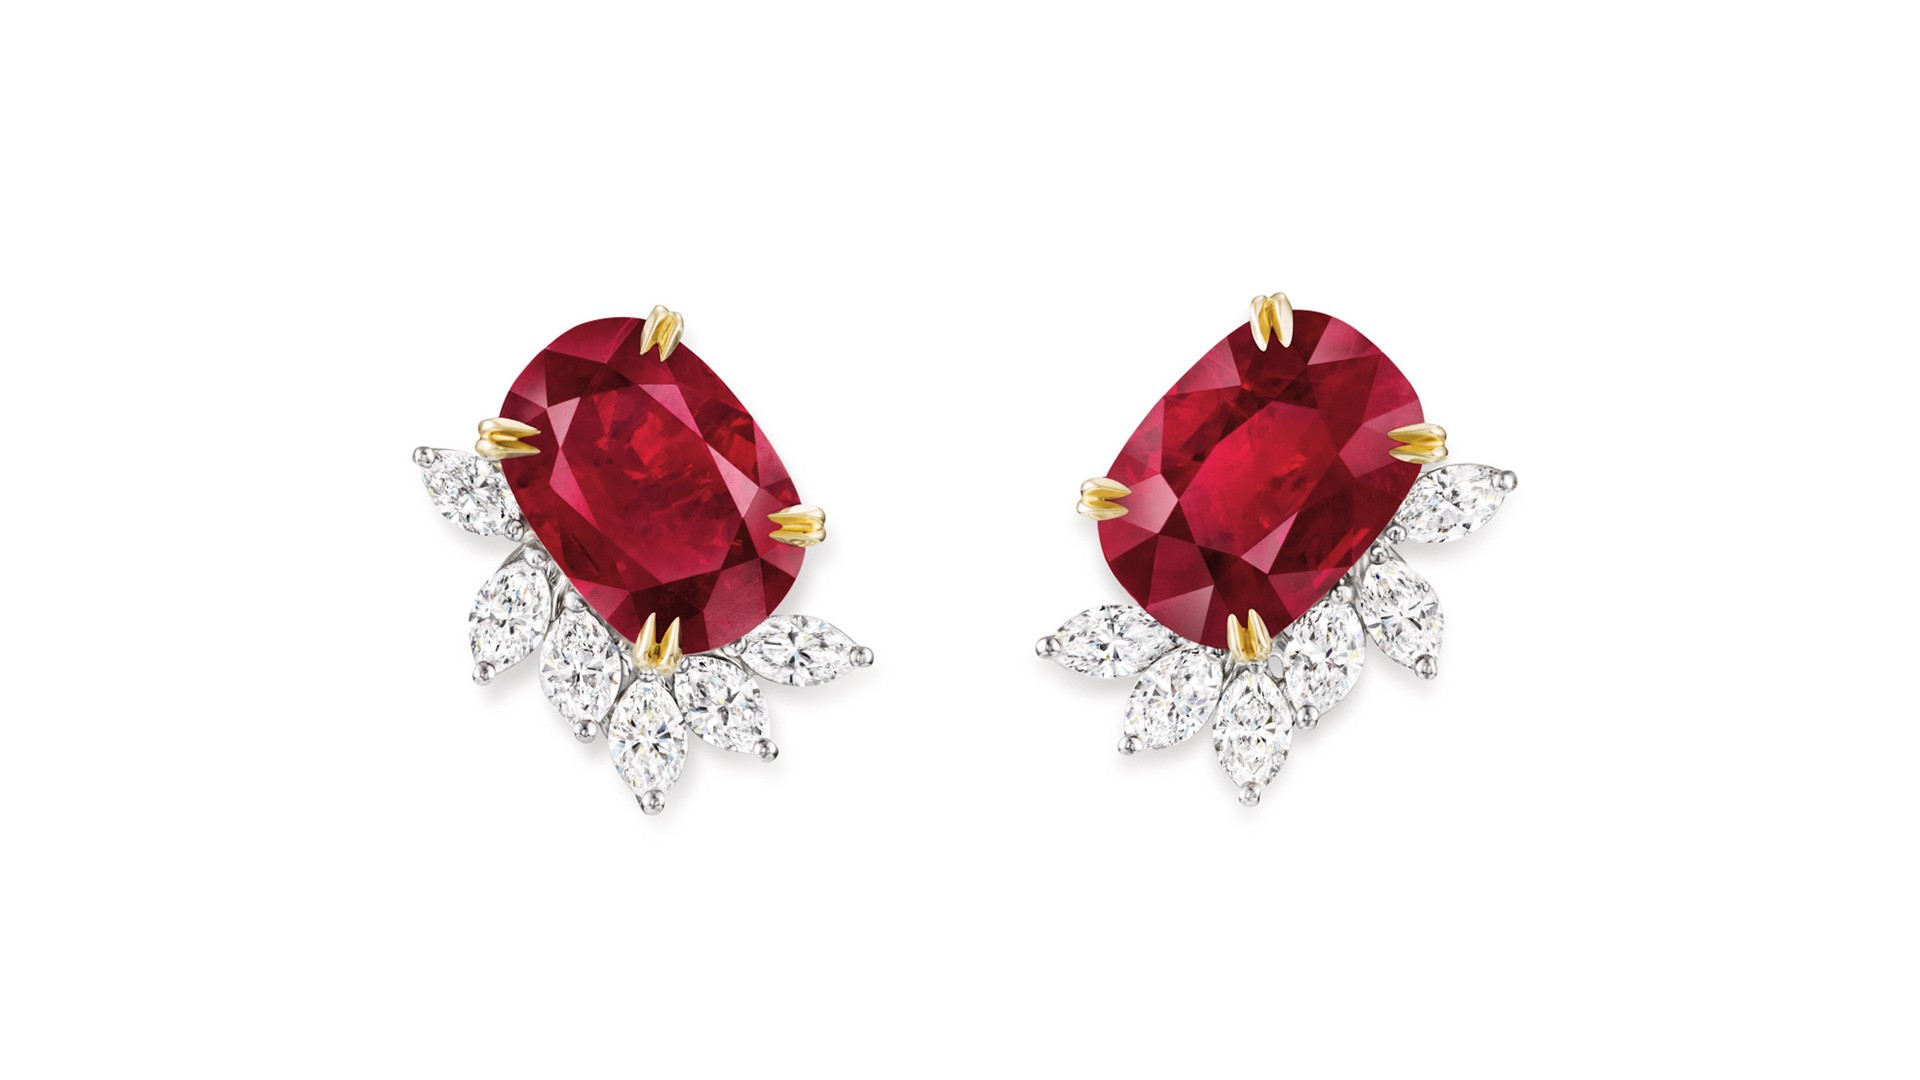 Harry Winston Incredibles collection ruby ring